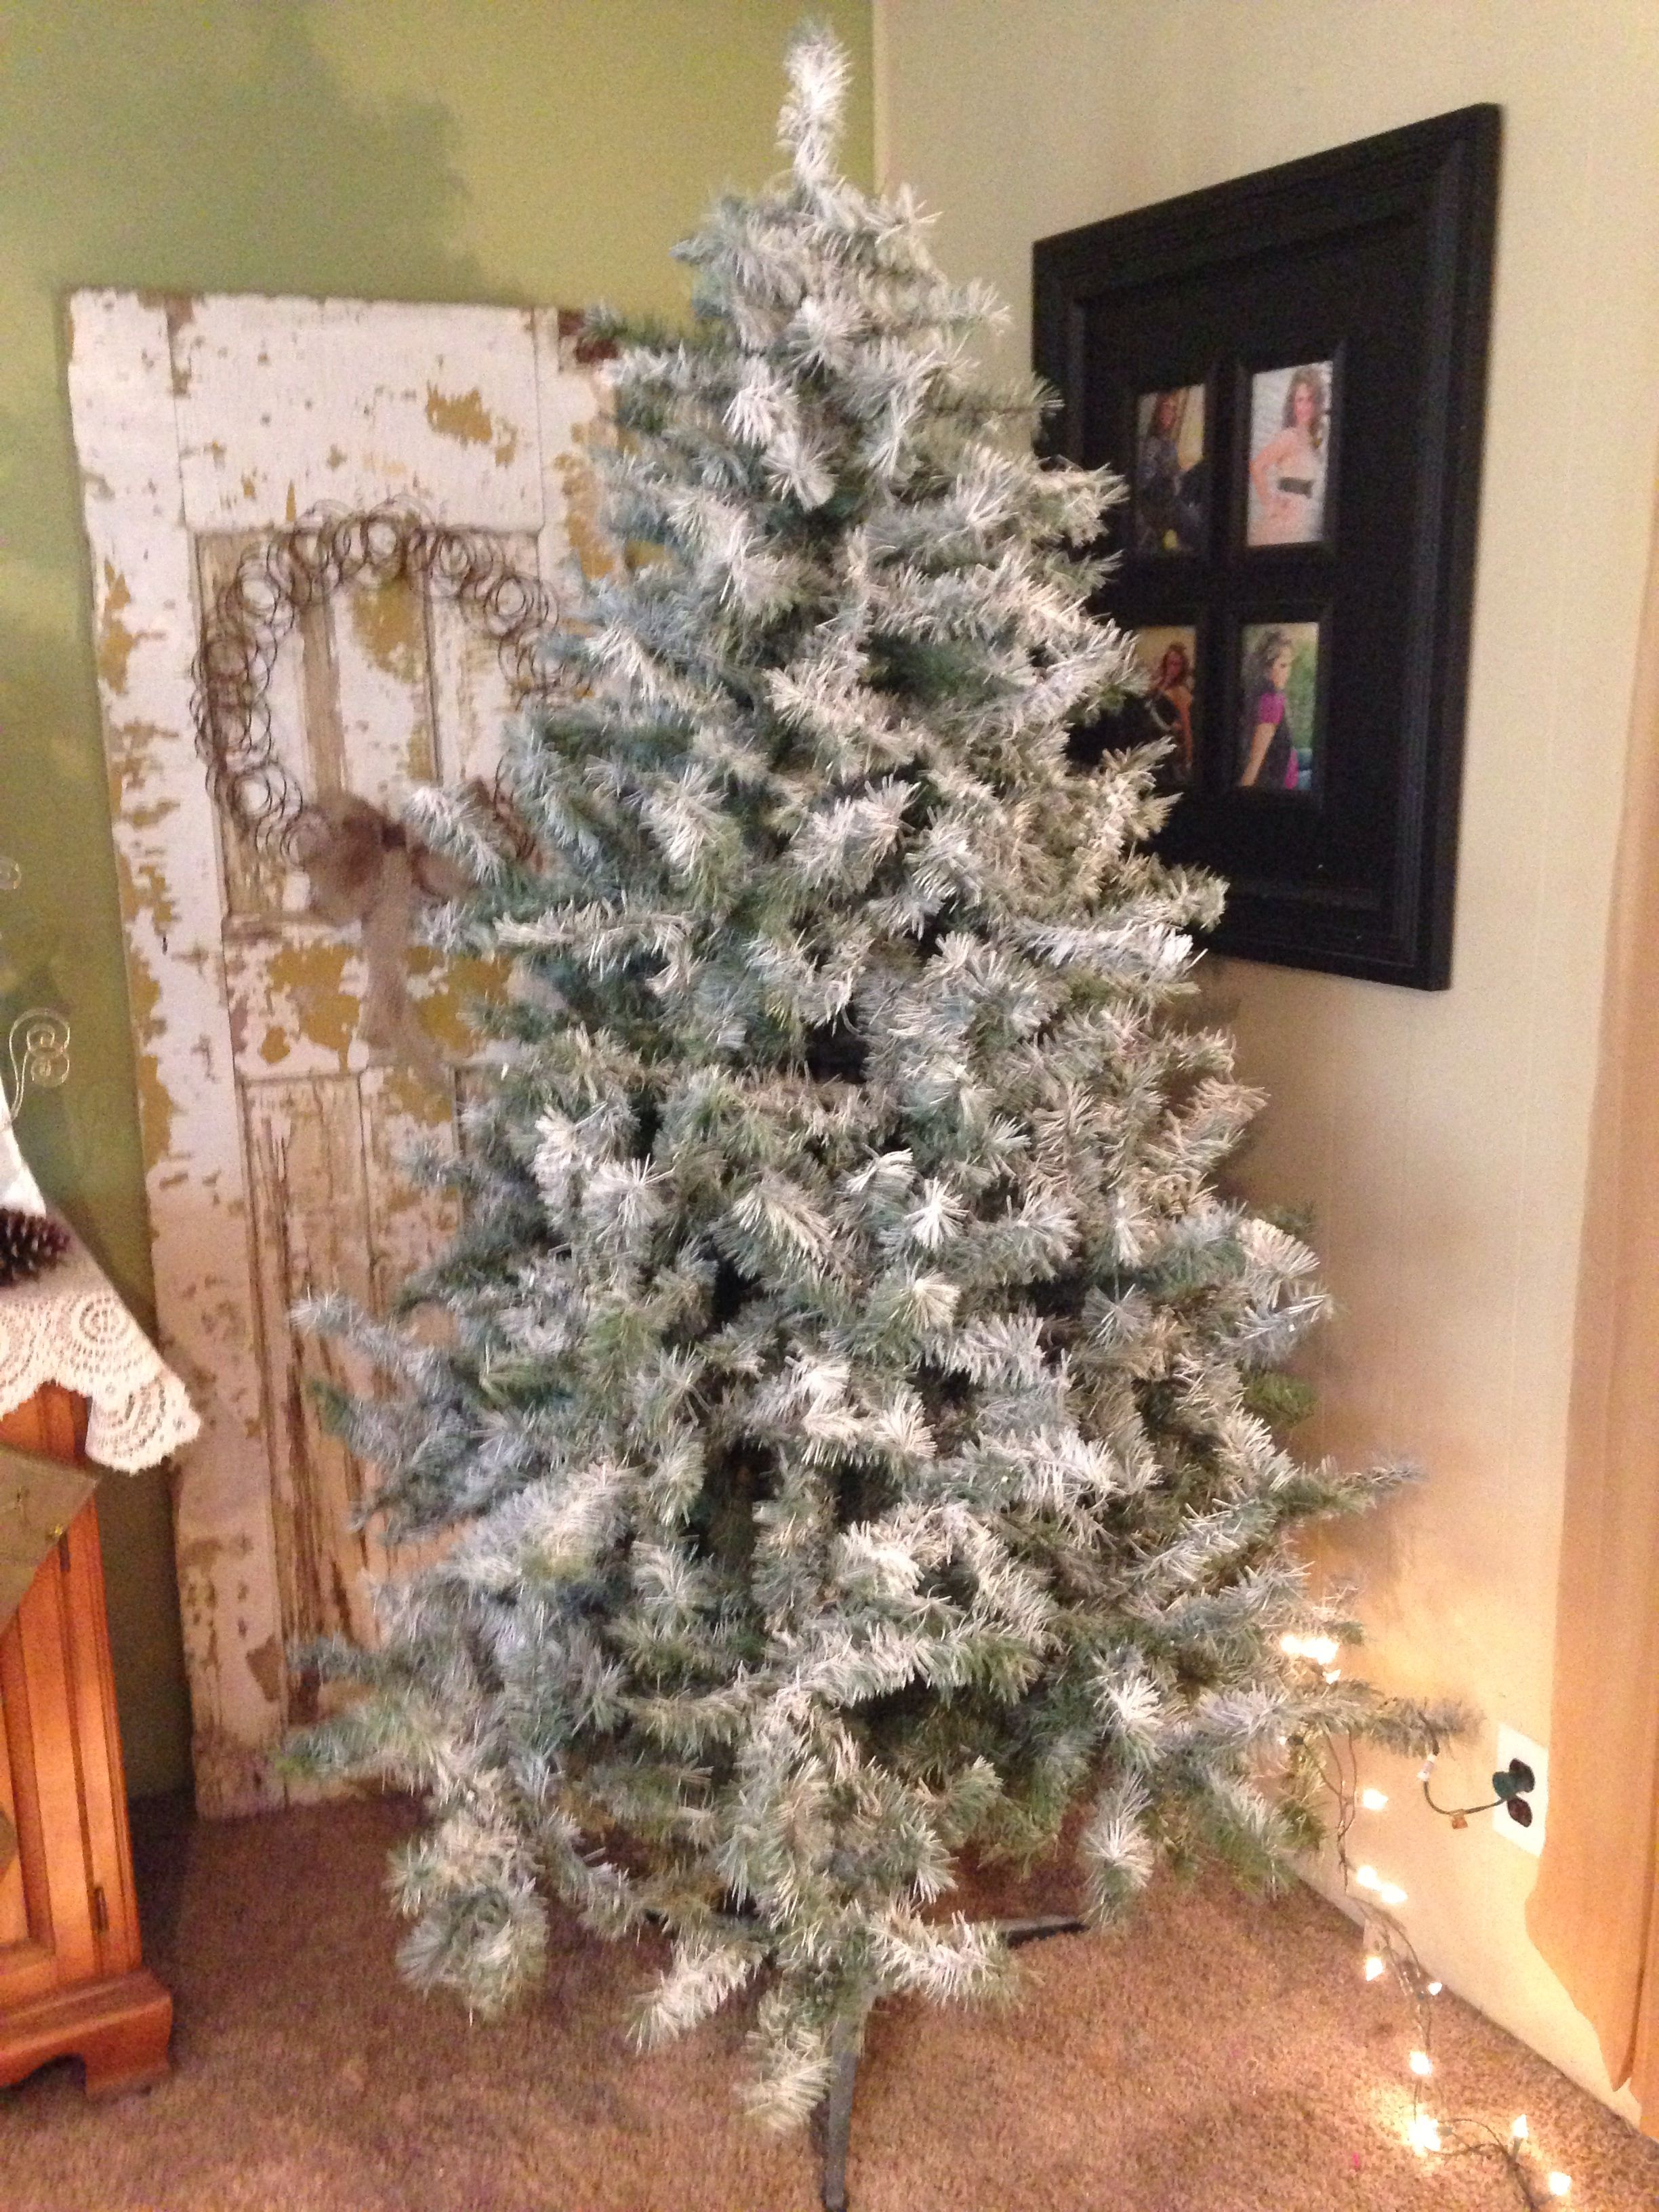 flocked christmas tree couple of cans of white spray paint 1 each and - Skinny Christmas Trees Hobby Lobby